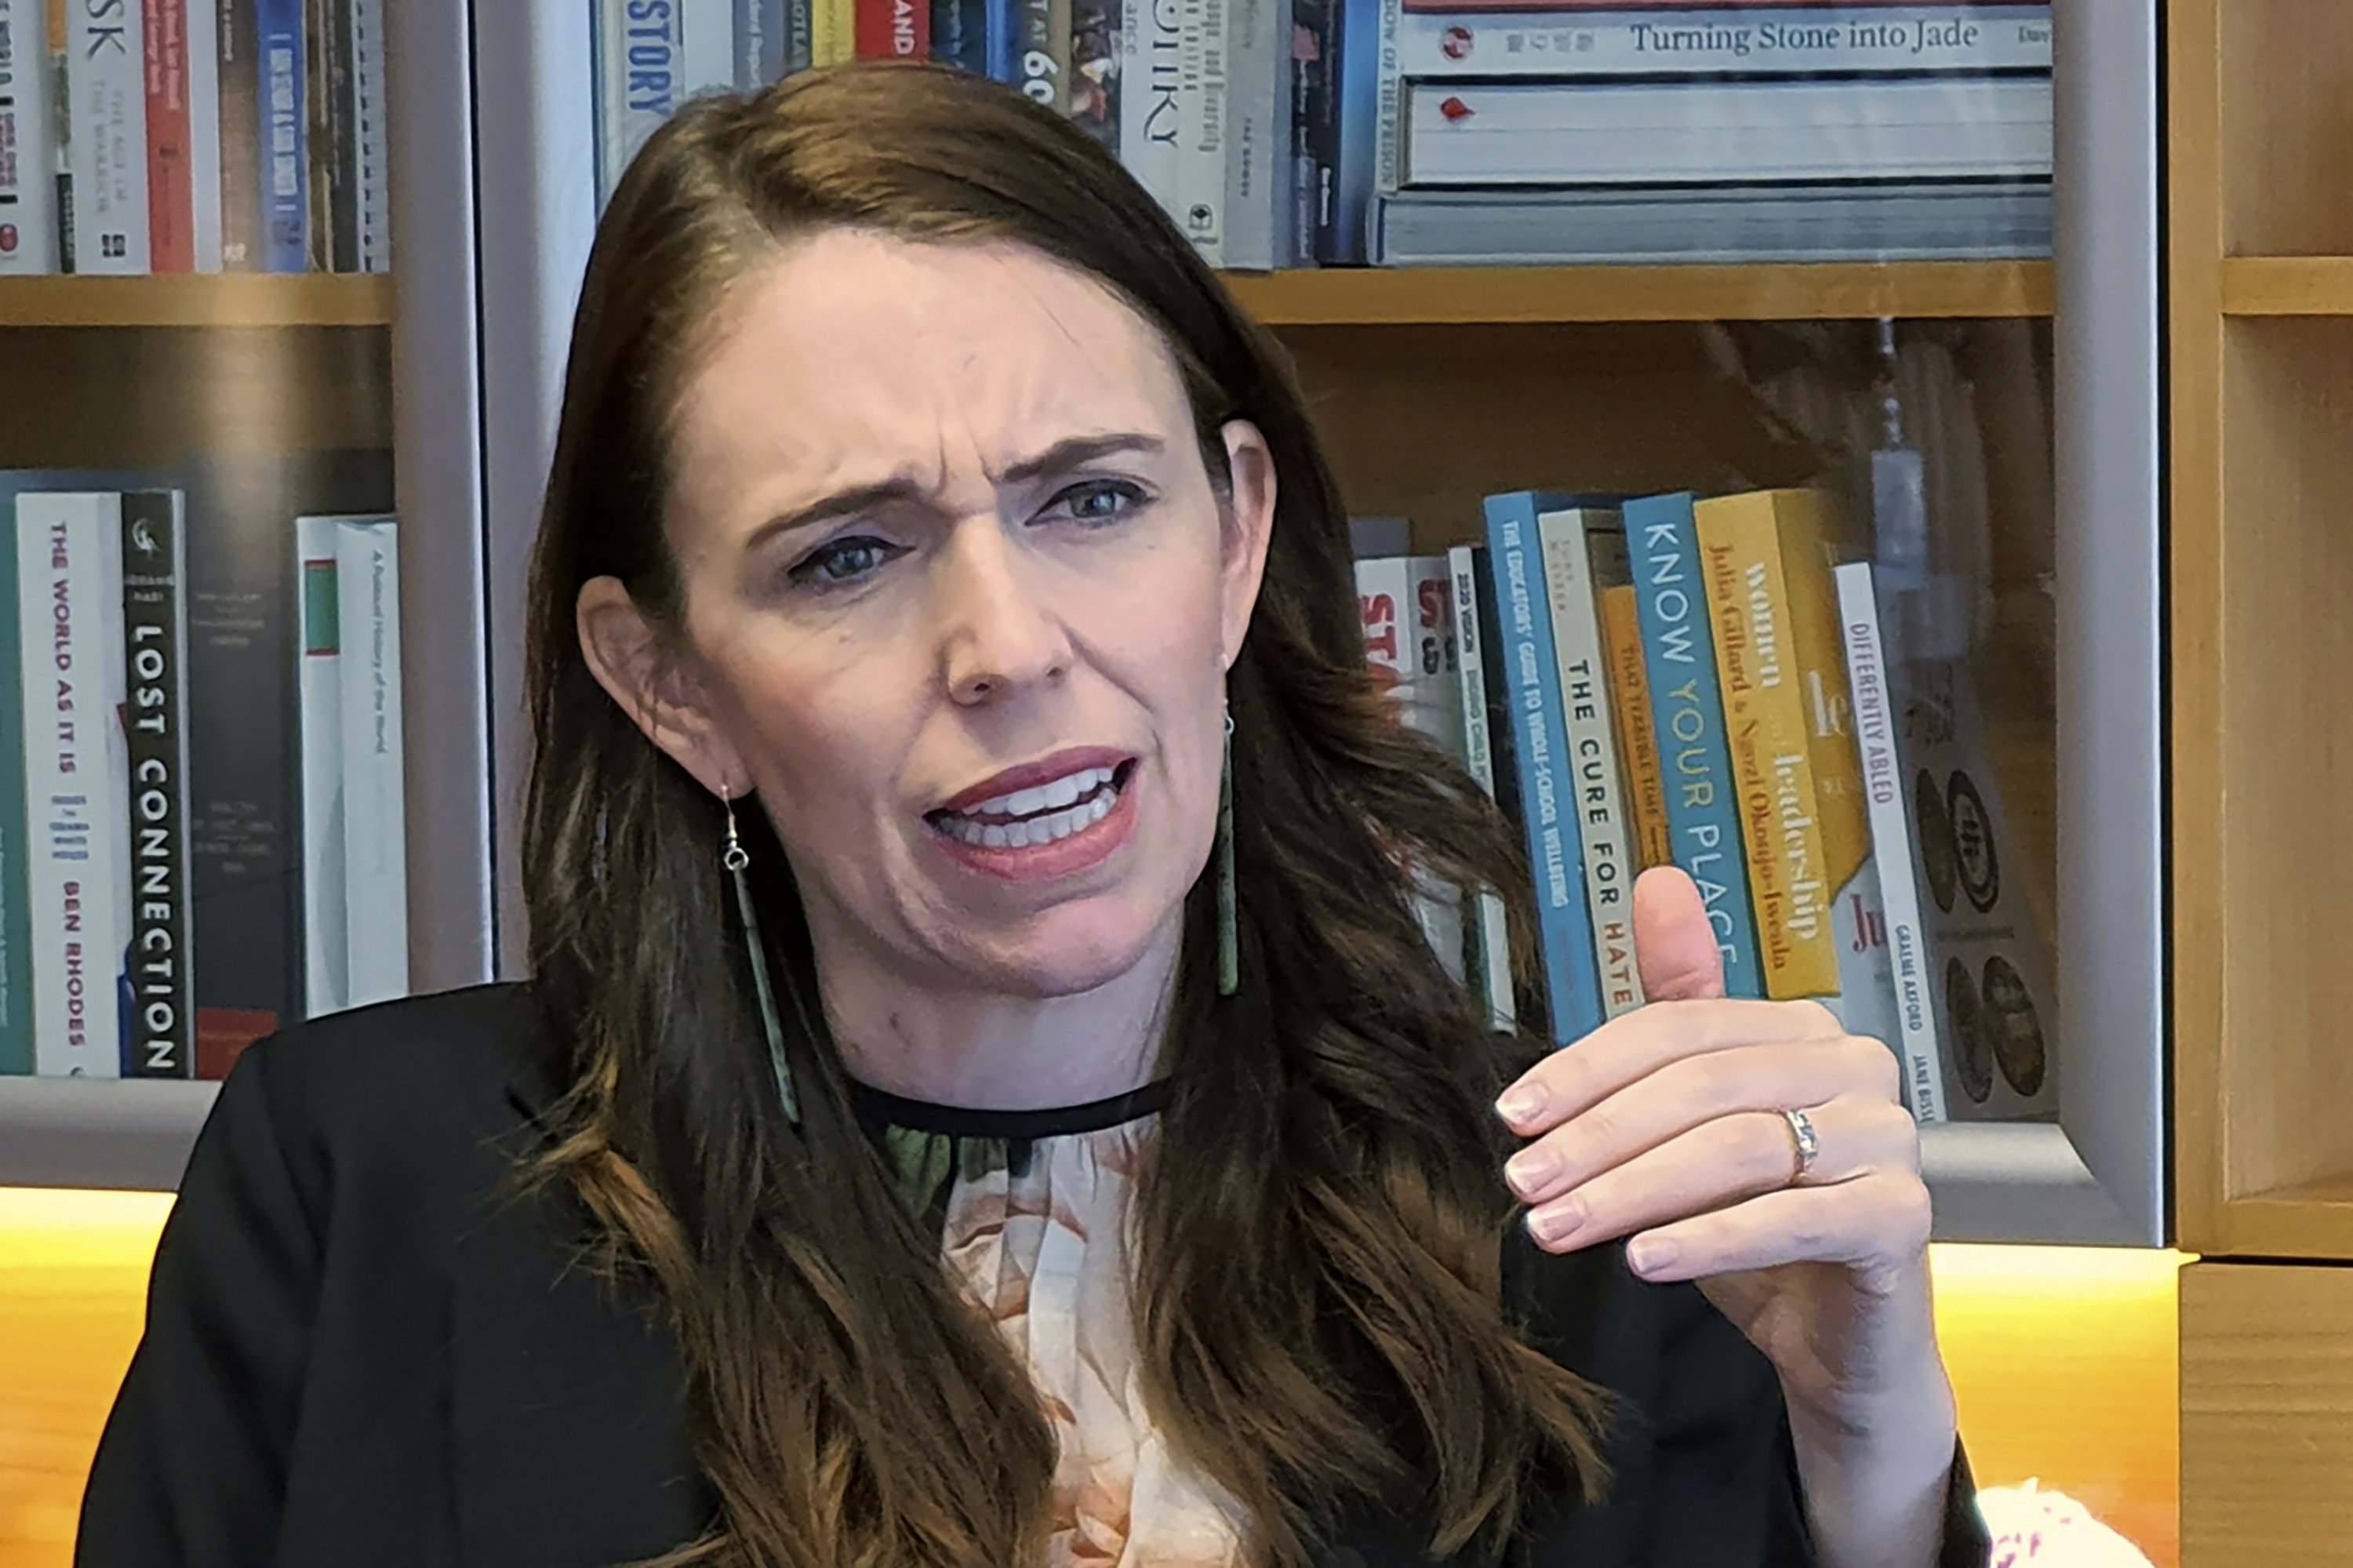 New Zealand's Prime Minister Jacinda Ardern speaks during an interview in her office at Parliament in Wellington, New Zealand, Dec. 16, 2020. (AP Photo)